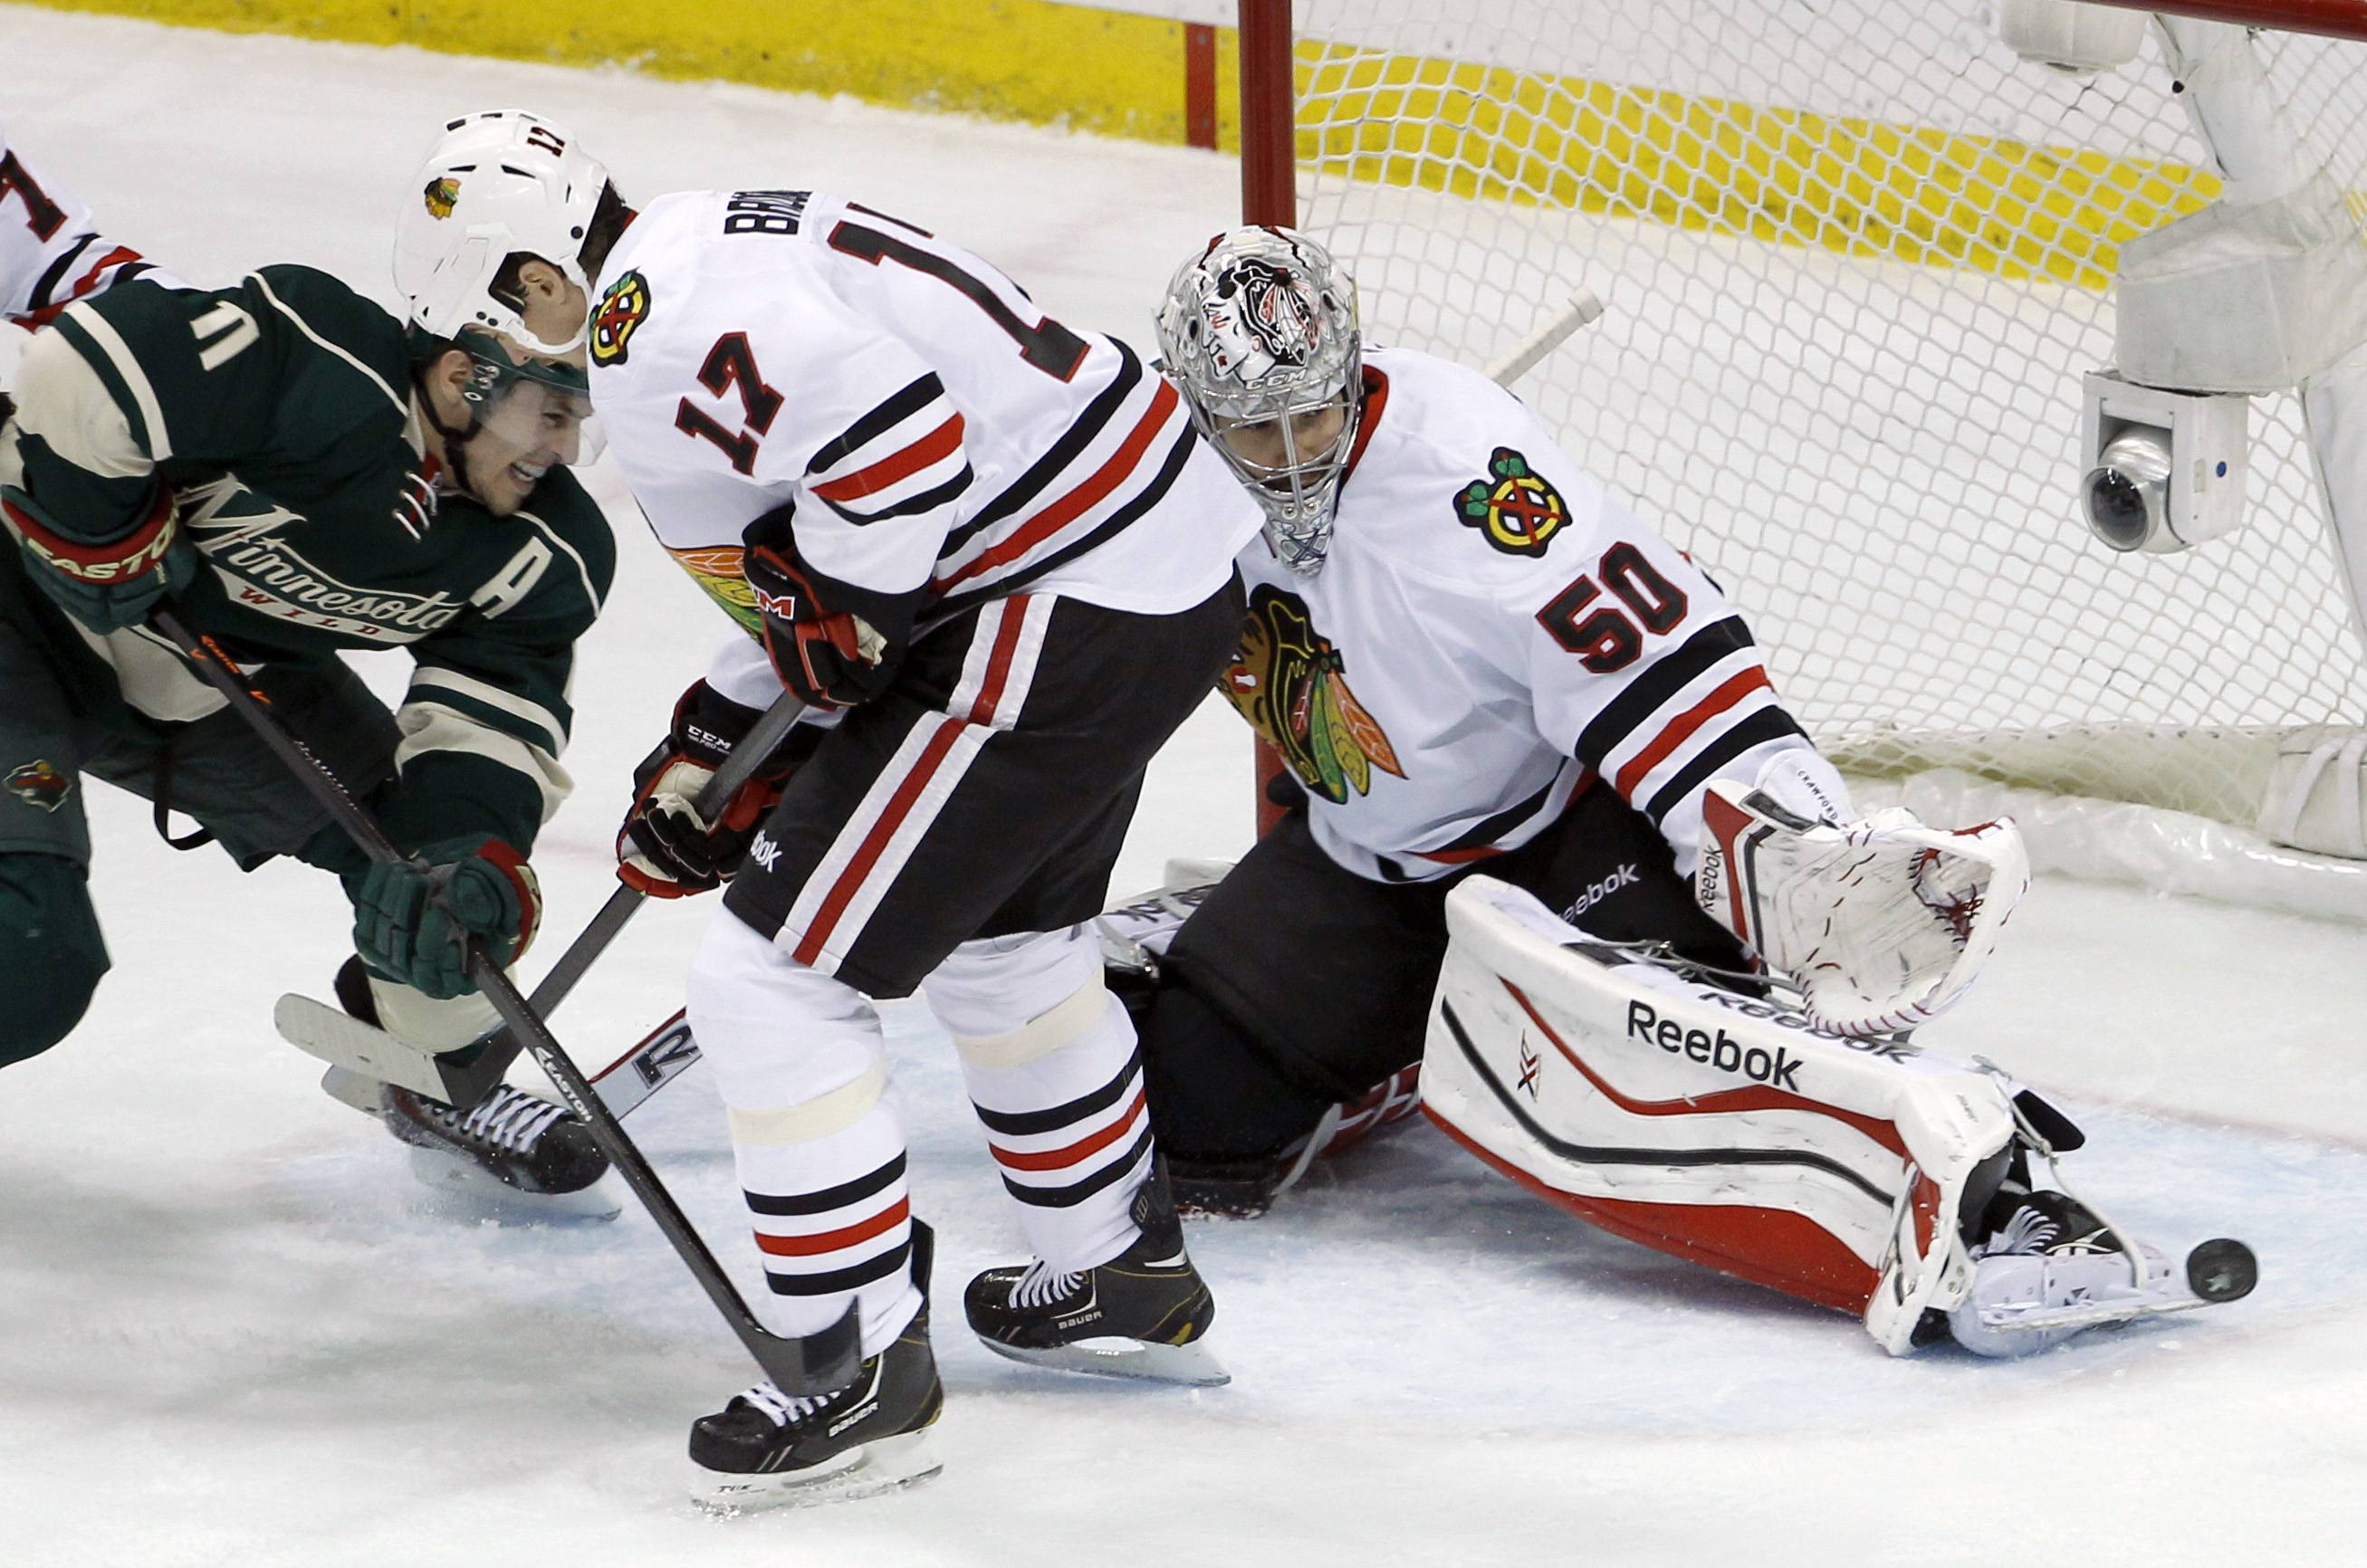 Corey Crawford deflects a shot in front of Blackhawks defenseman Sheldon Brookbank (17) and Minnesota Wild left wing Zach Parise (11) during Game 6 of the Western Conference semifinals.